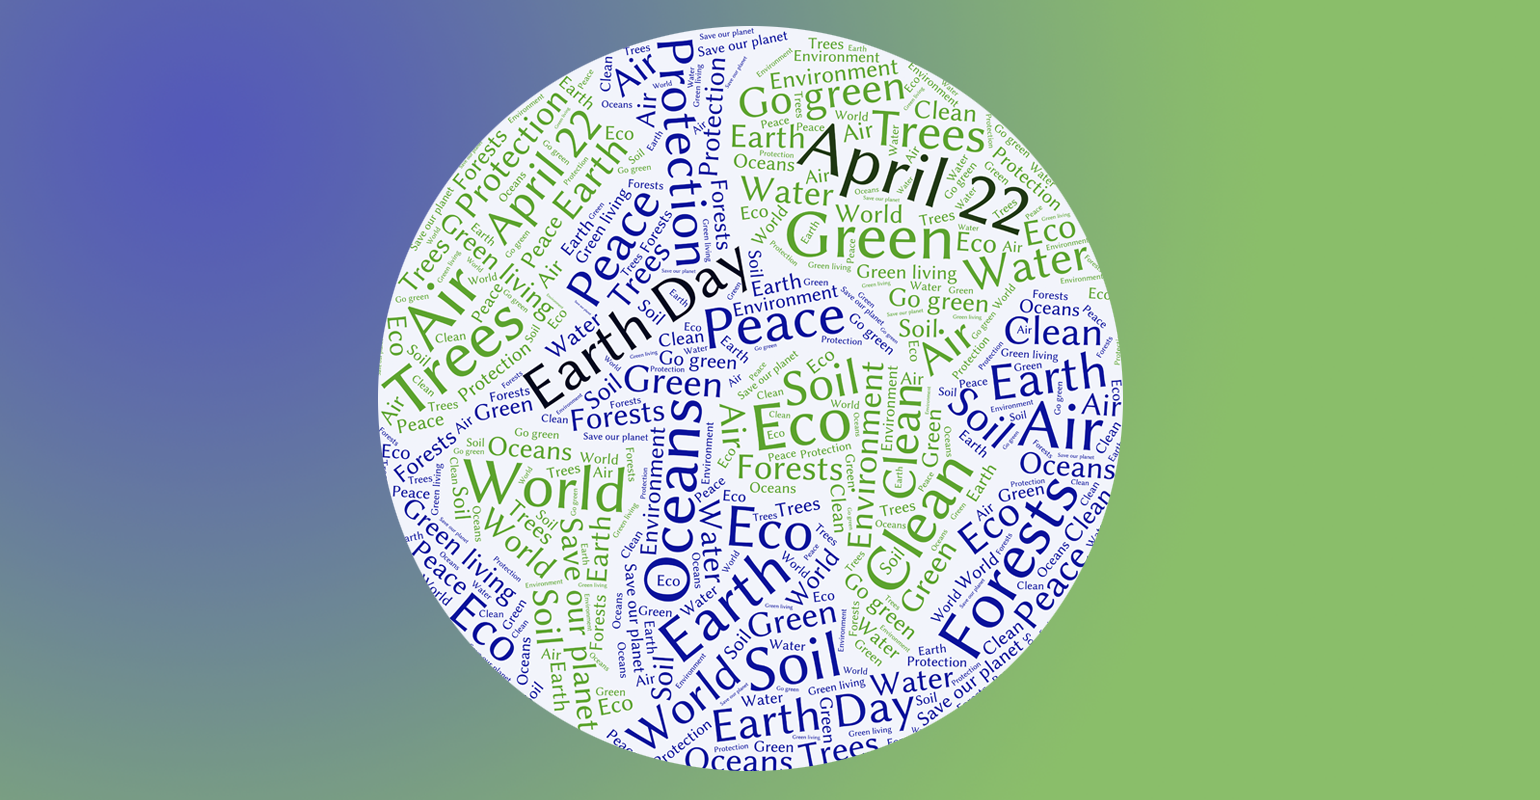 Happy 50th anniversary, Earth Day